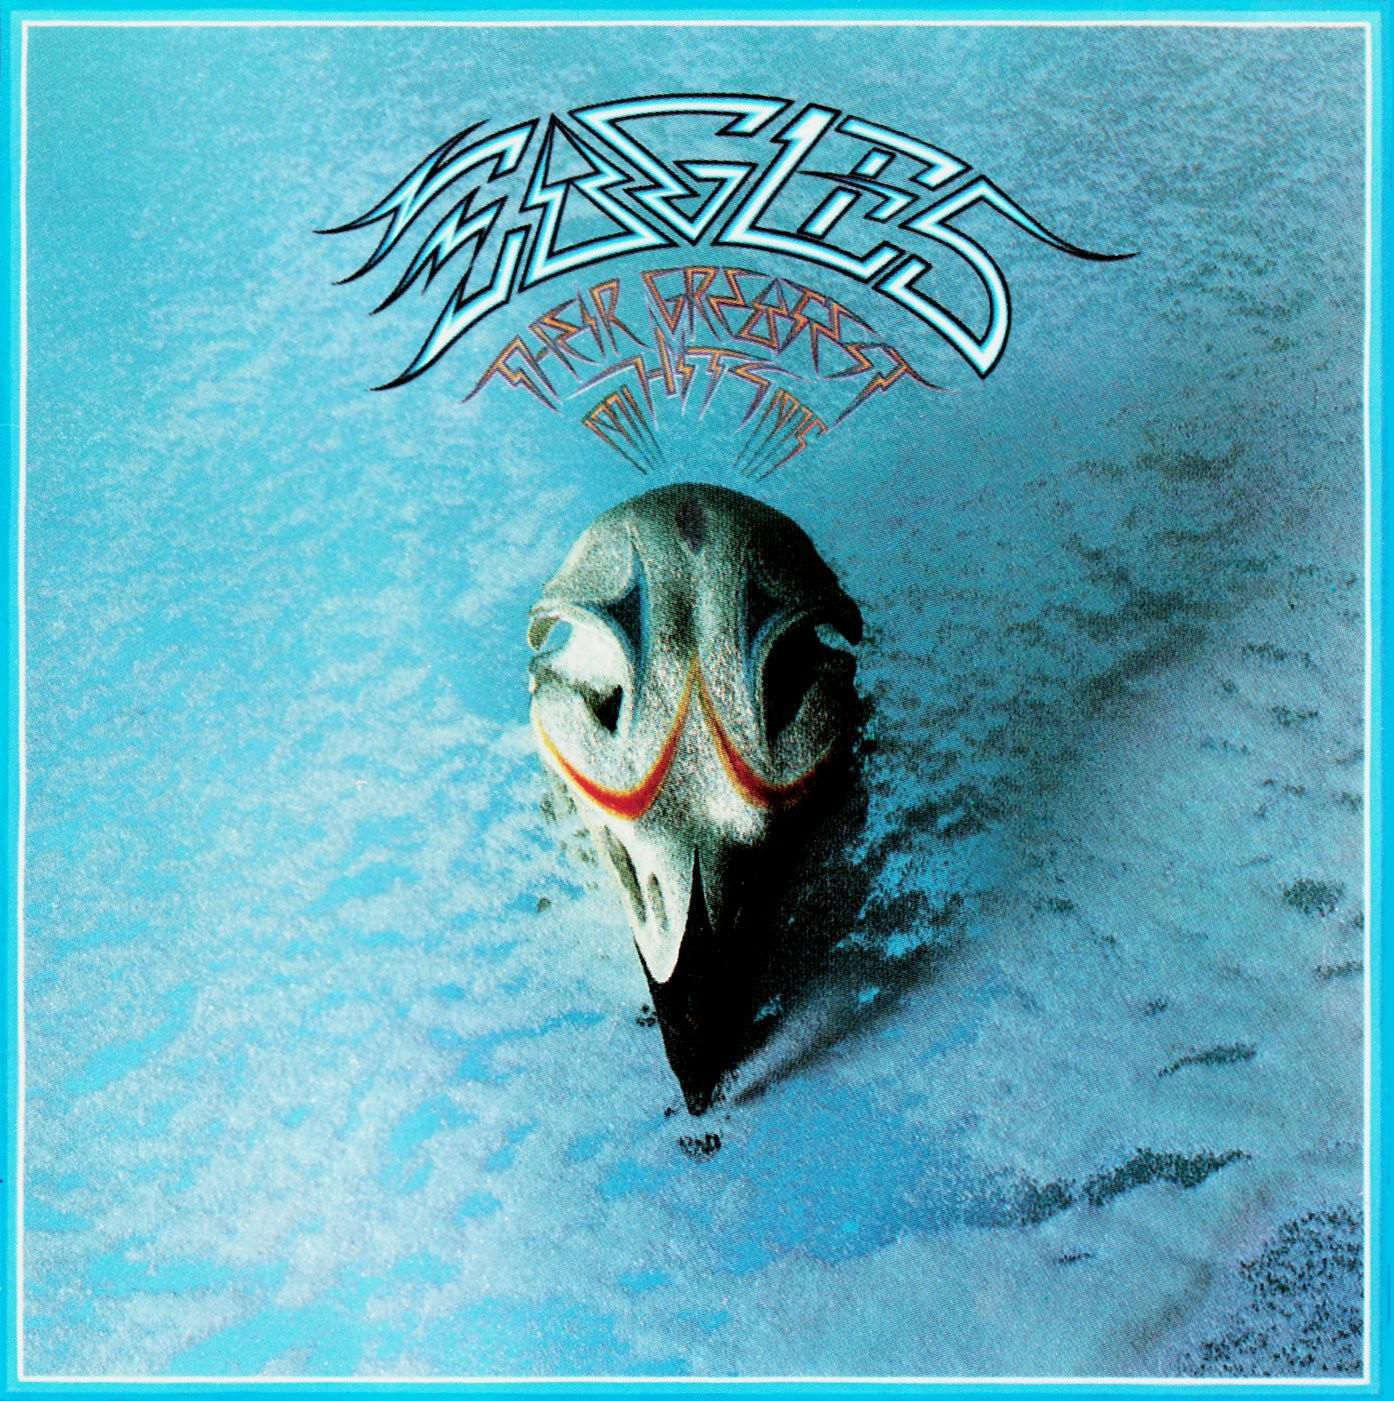 Biographical profile of classic rock band Eagles